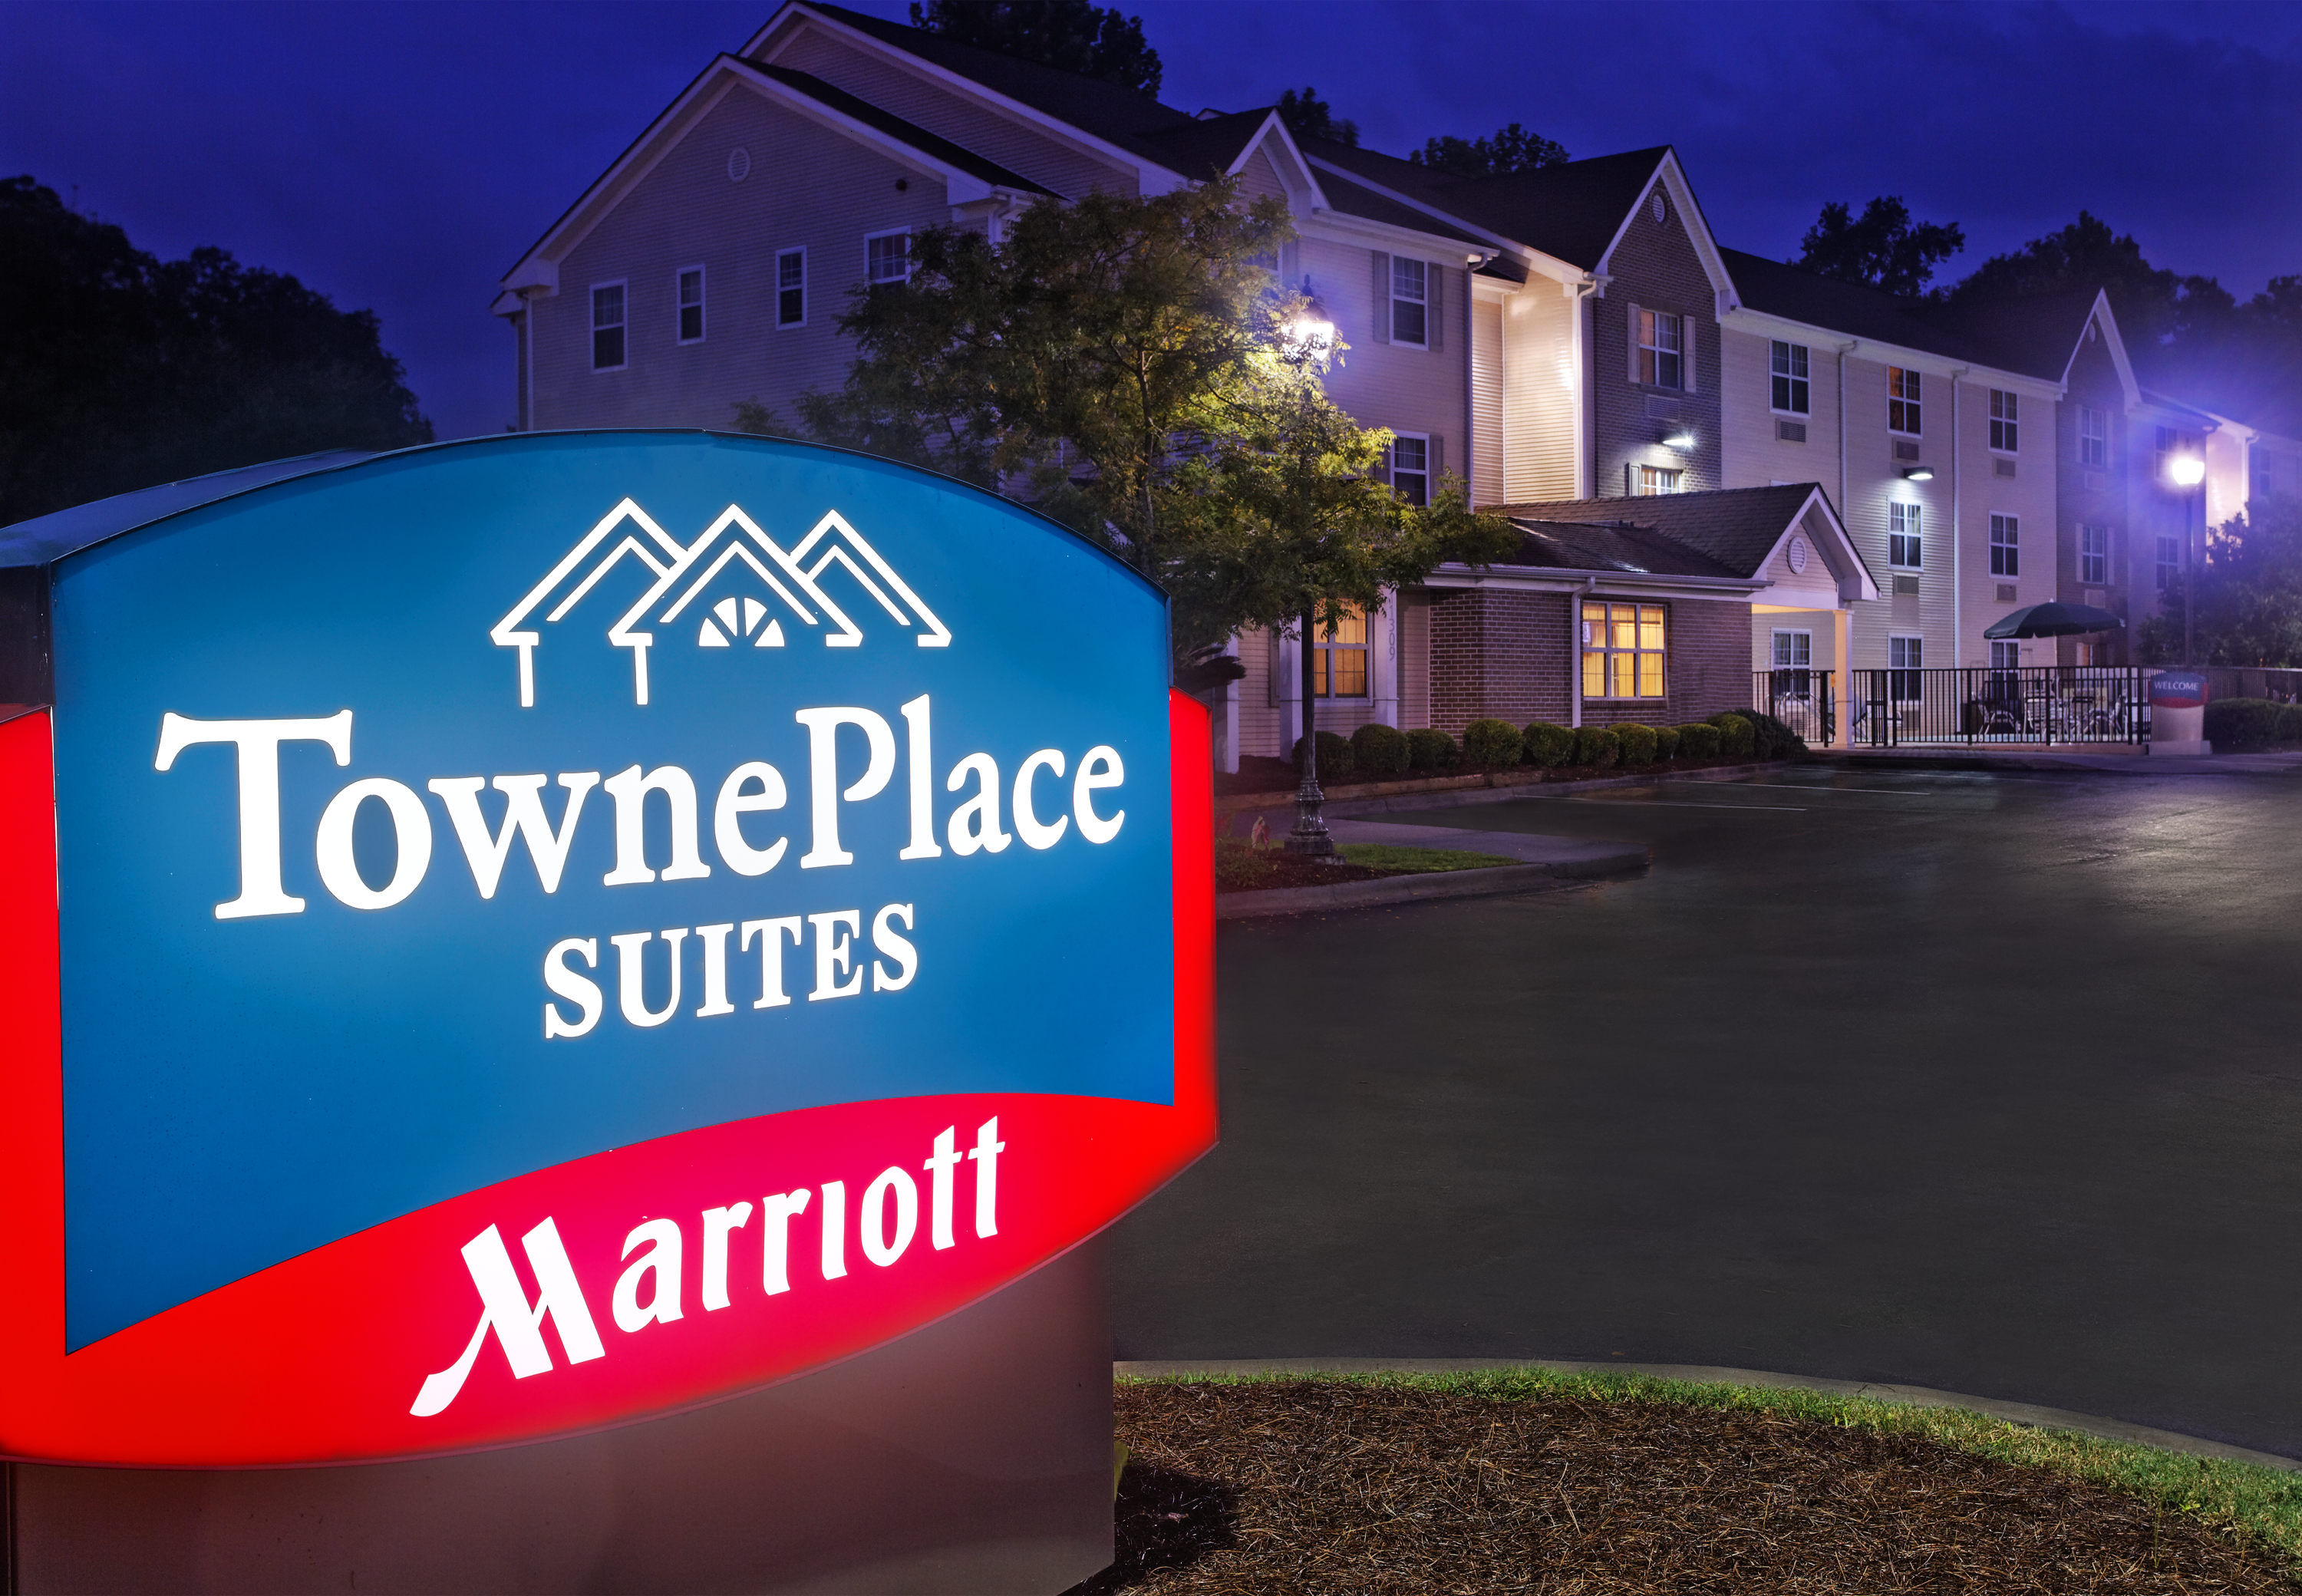 Use TownePlace Suites coupons to save money. Whenever you want fine towne place hotel coupons and discount deals or towneplace suites coupon codes and promo codes to use online, just come to our site for the best deals, promotions and online coupons!5/5(1).